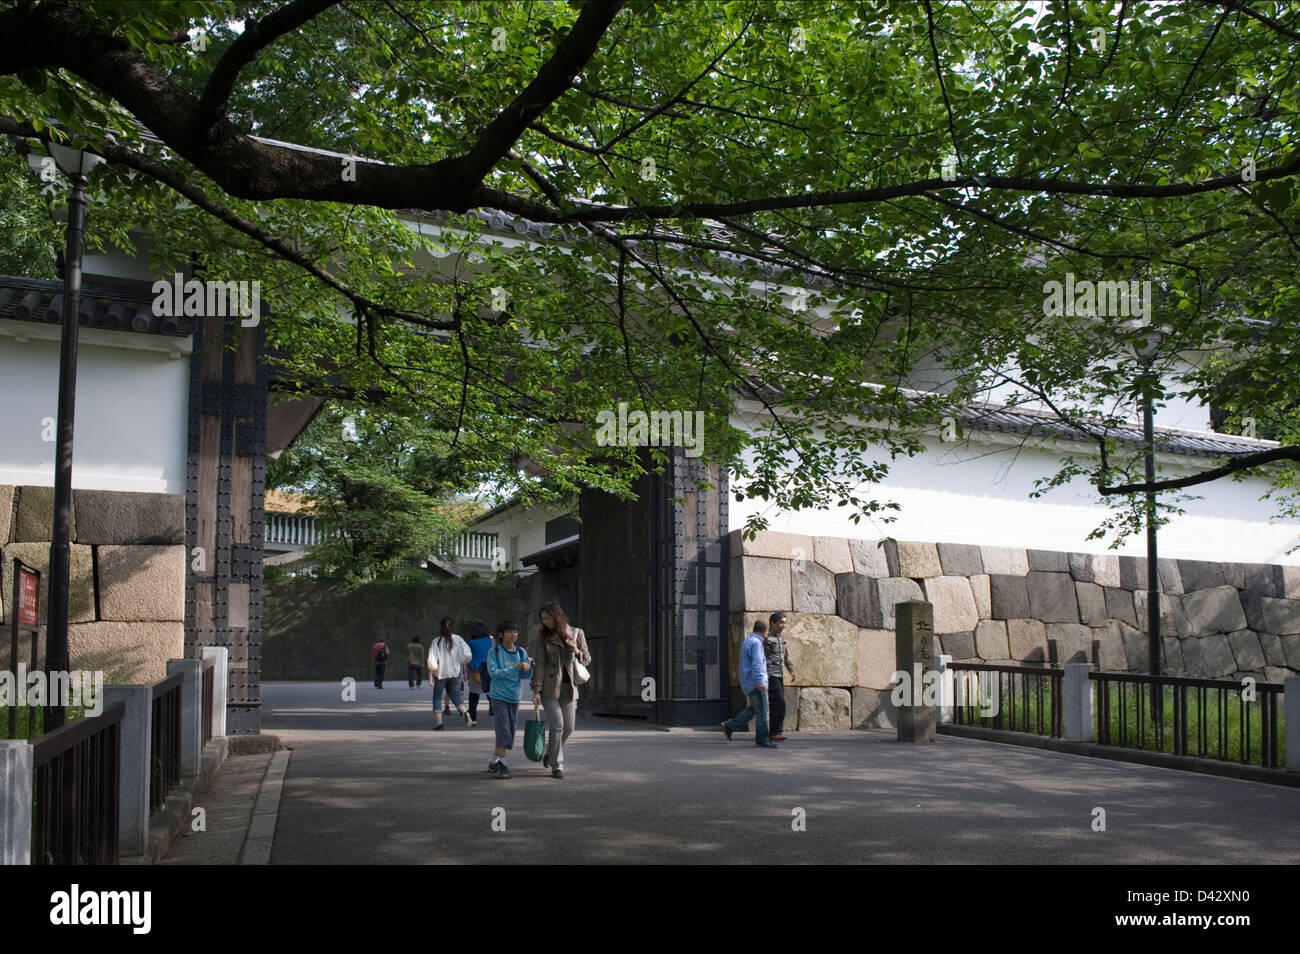 People passing through the old Edo Castle stone wall and gate at the outer moat in Chiyoda-ku, Tokyo. - Stock Image